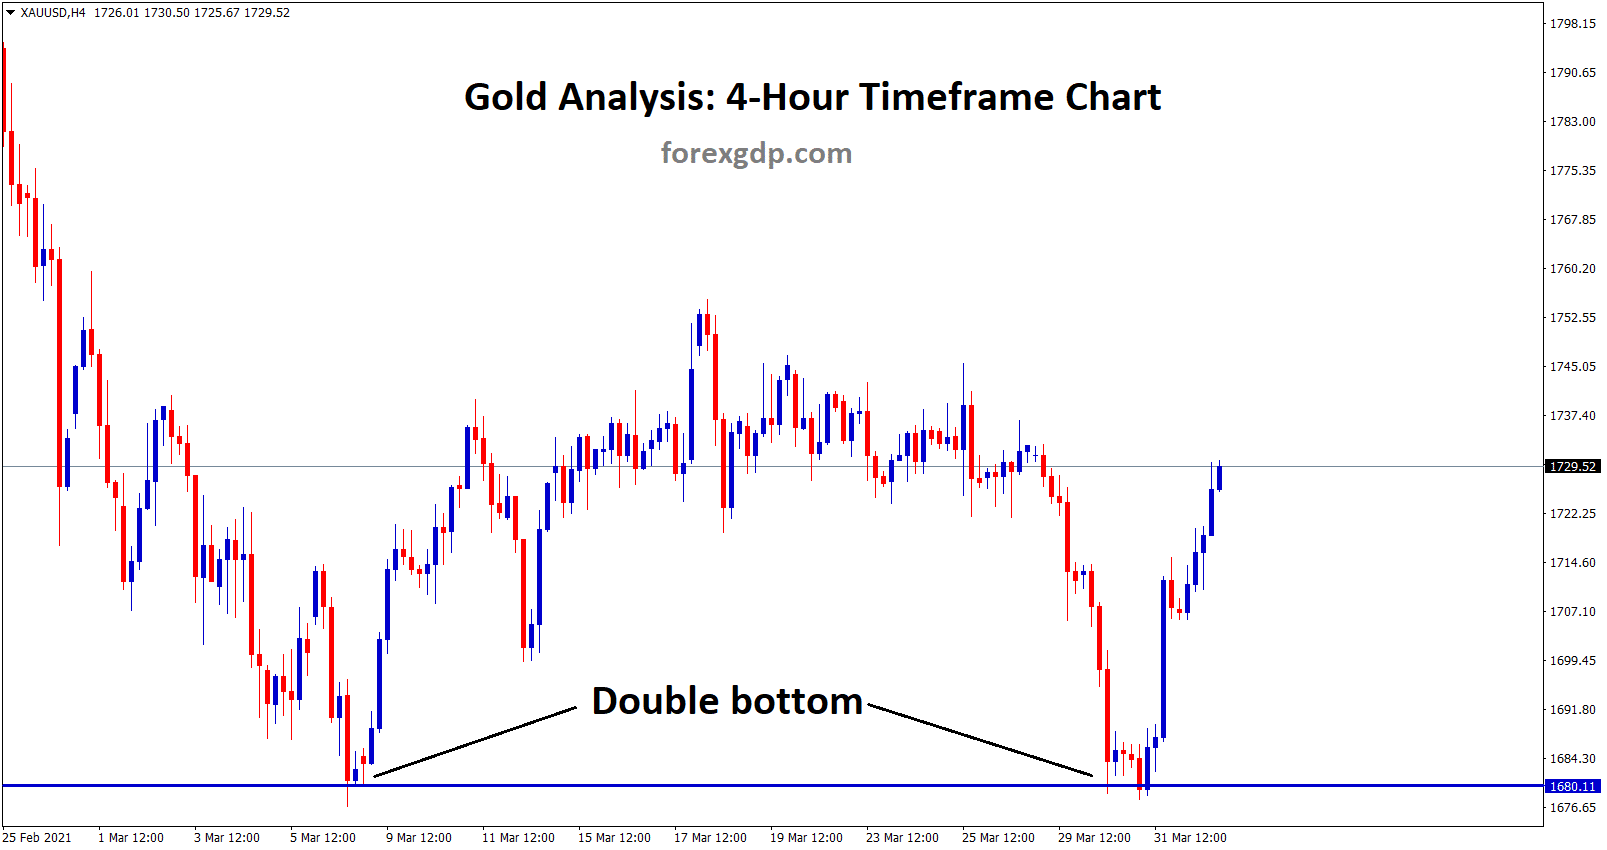 Gold Double bottom formed in the 4hr chart